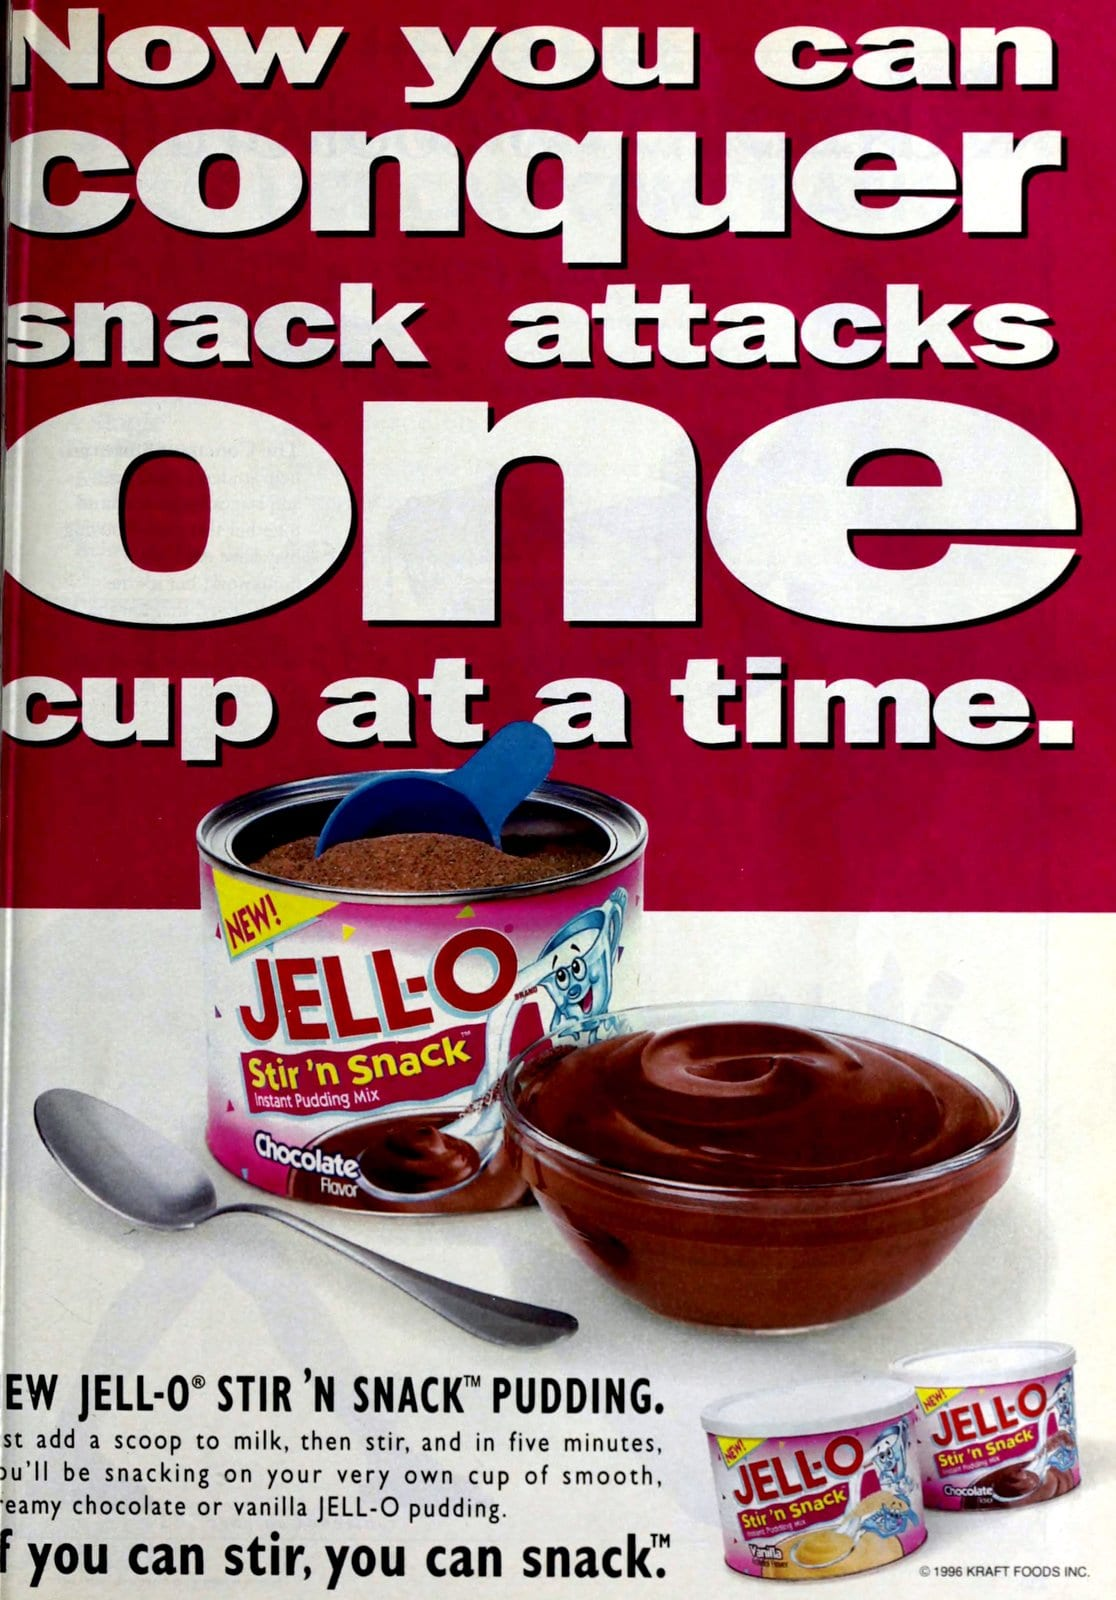 Vintage Jell-O Stir N Snack individual pudding mix cans (1996)